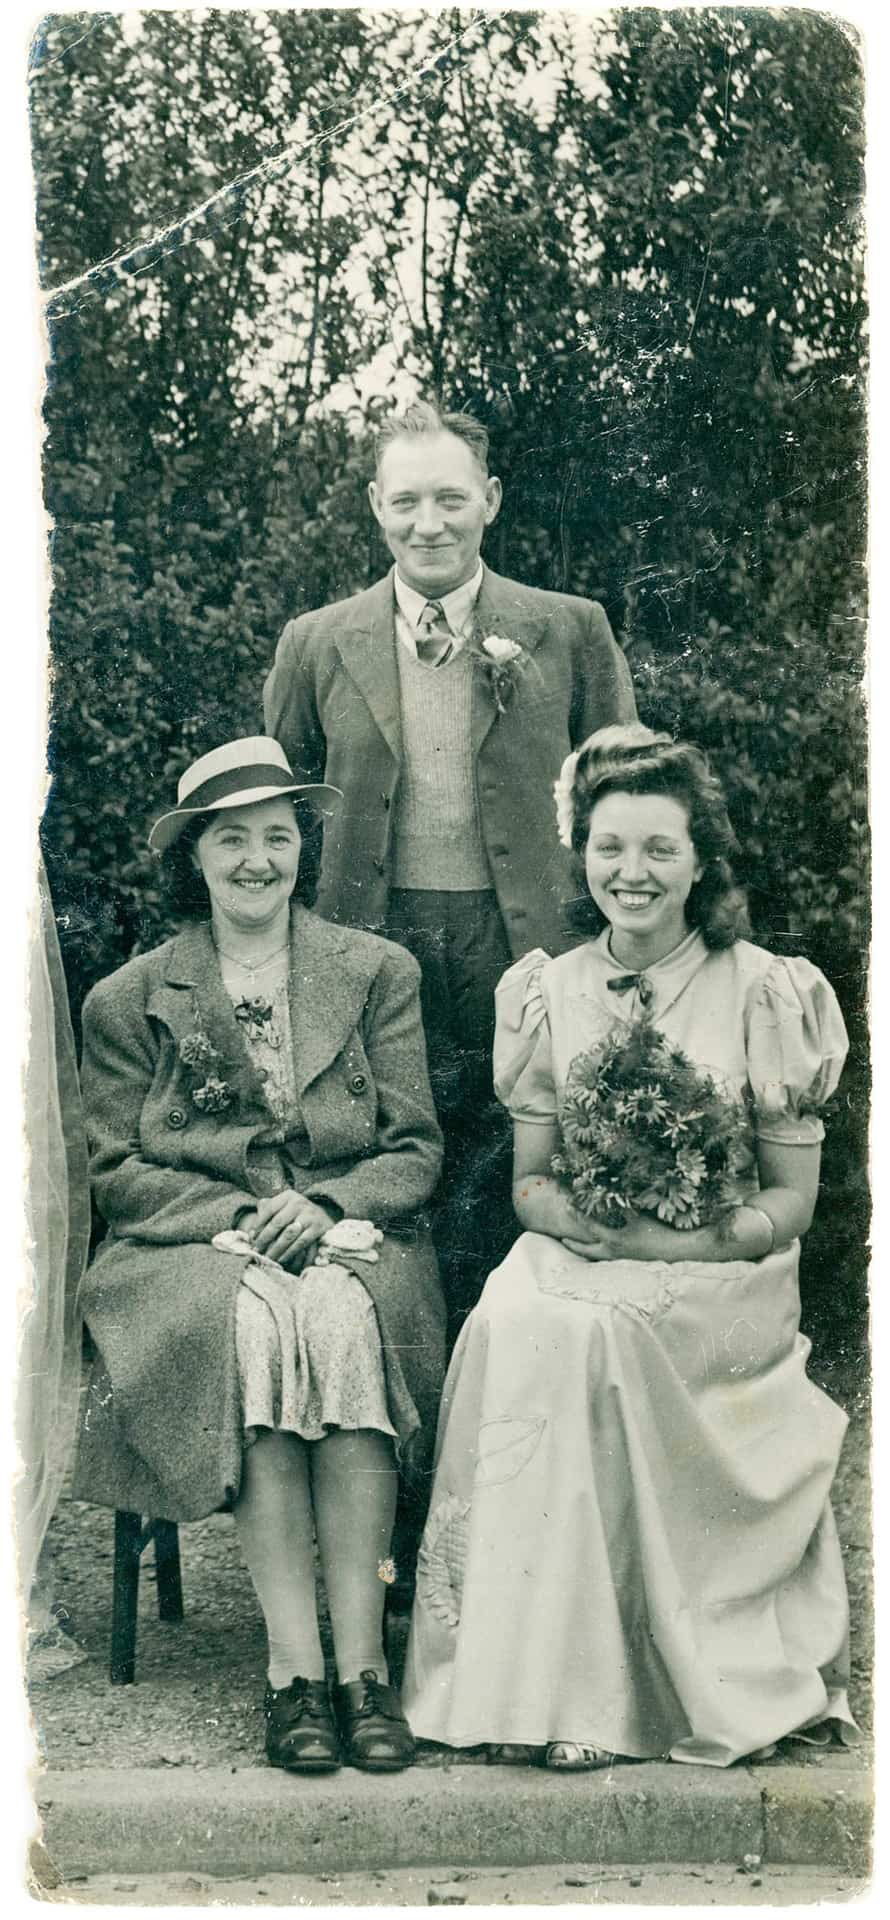 Granddad Walter (standing), Nan Lil and Aunty Rene circa 1940s